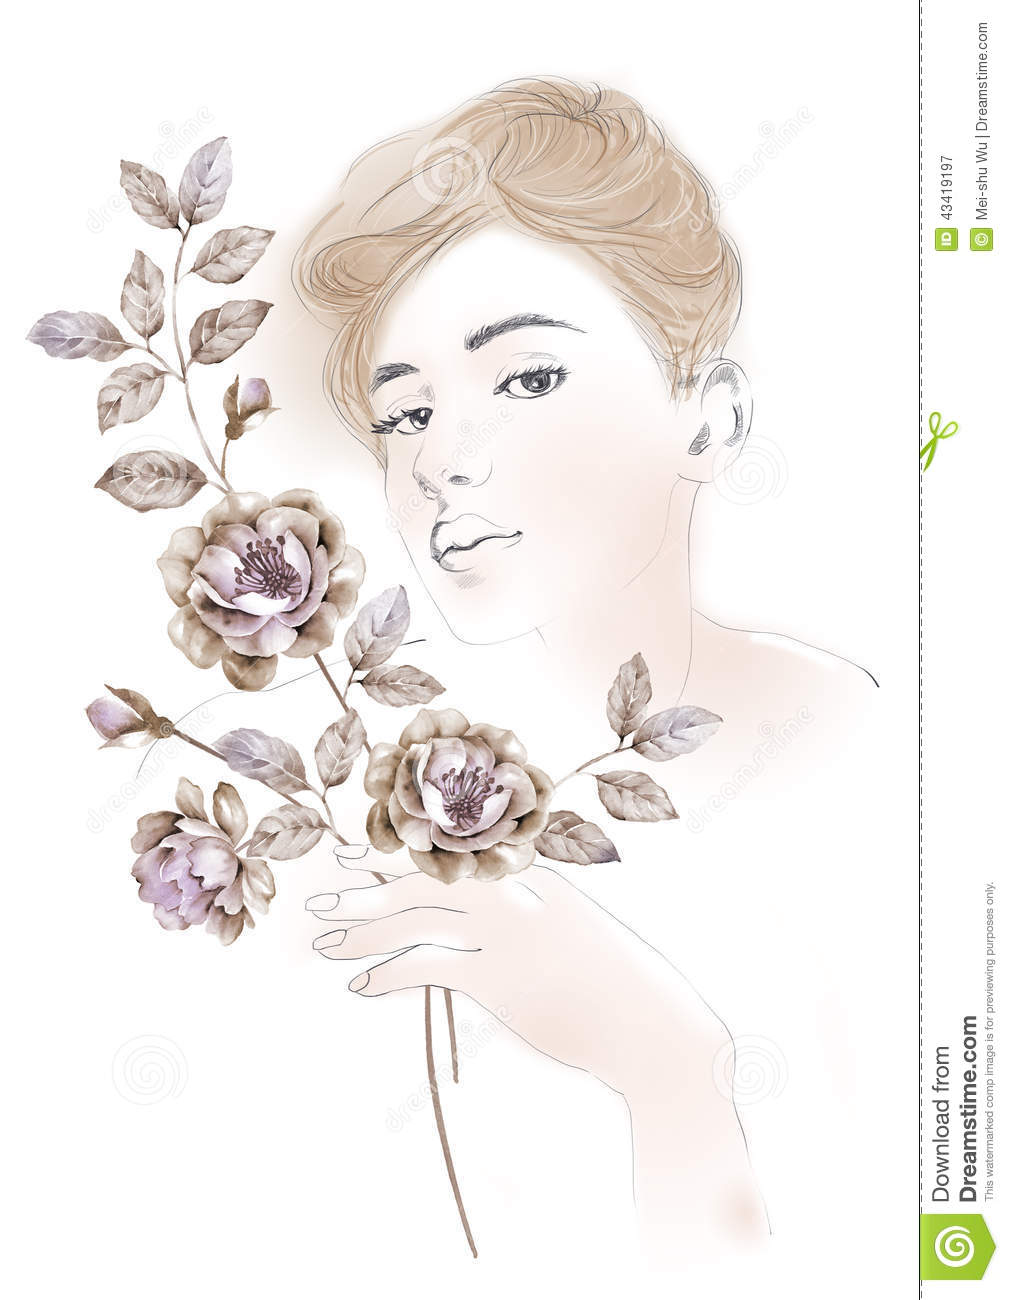 Watercolor Illustration Flowers And Portrait Of Beautiful